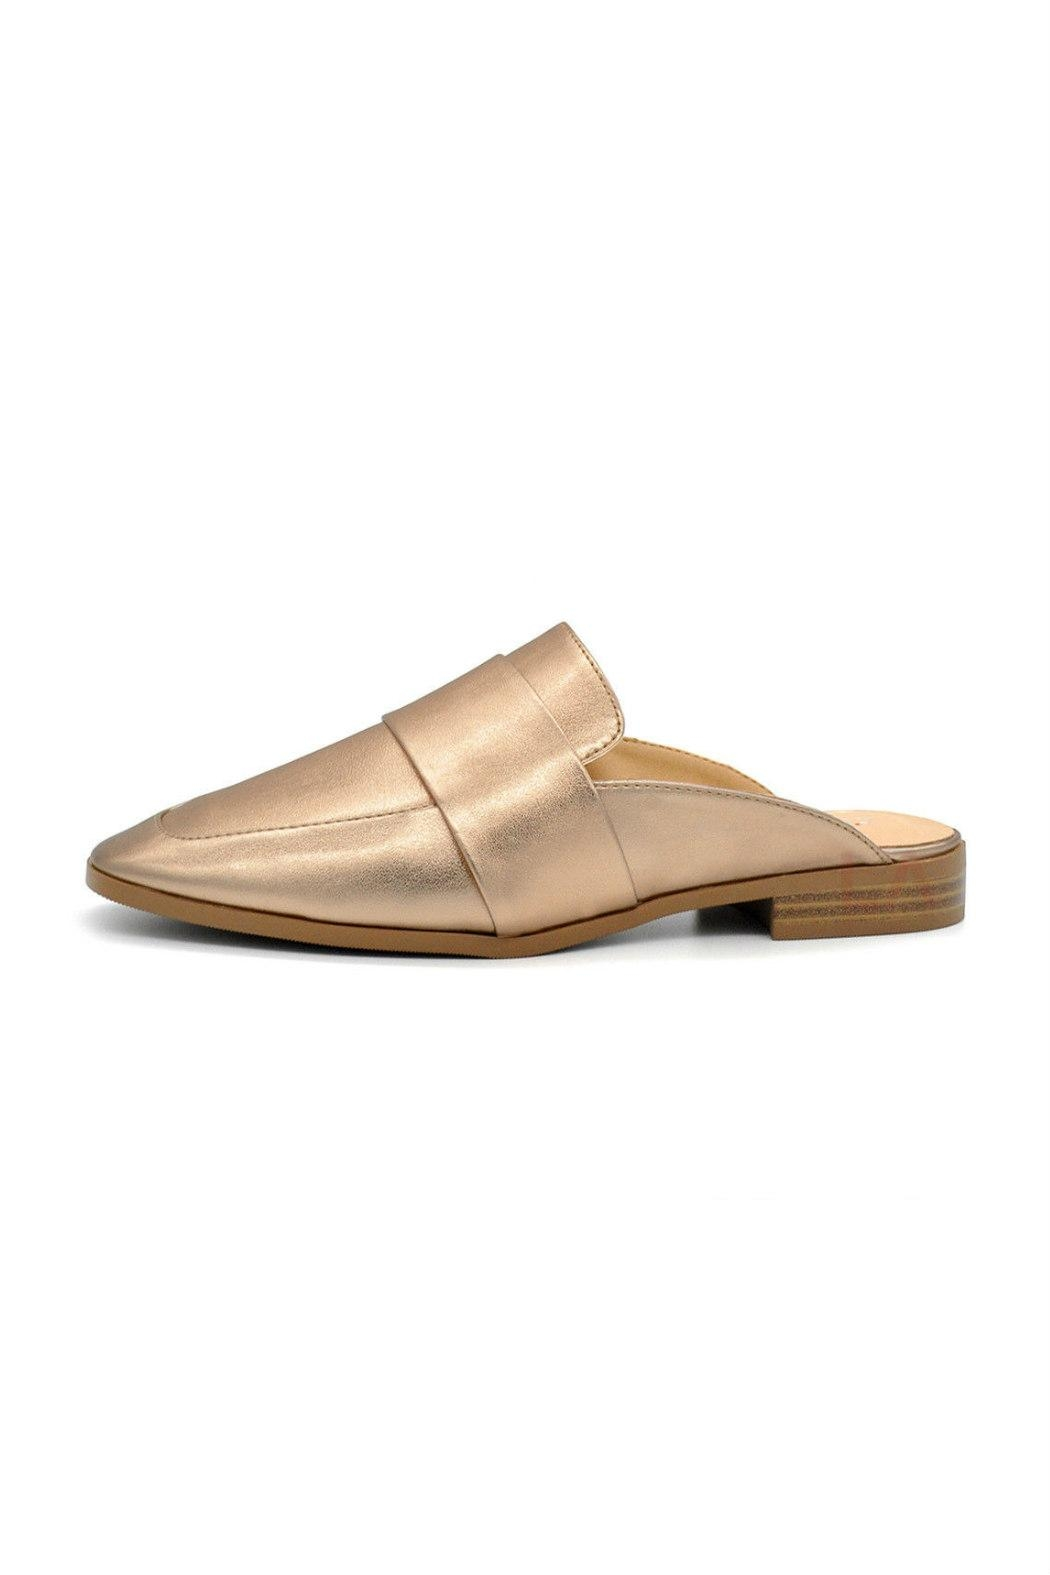 City Classified Nun Loafer Slide - Main Image